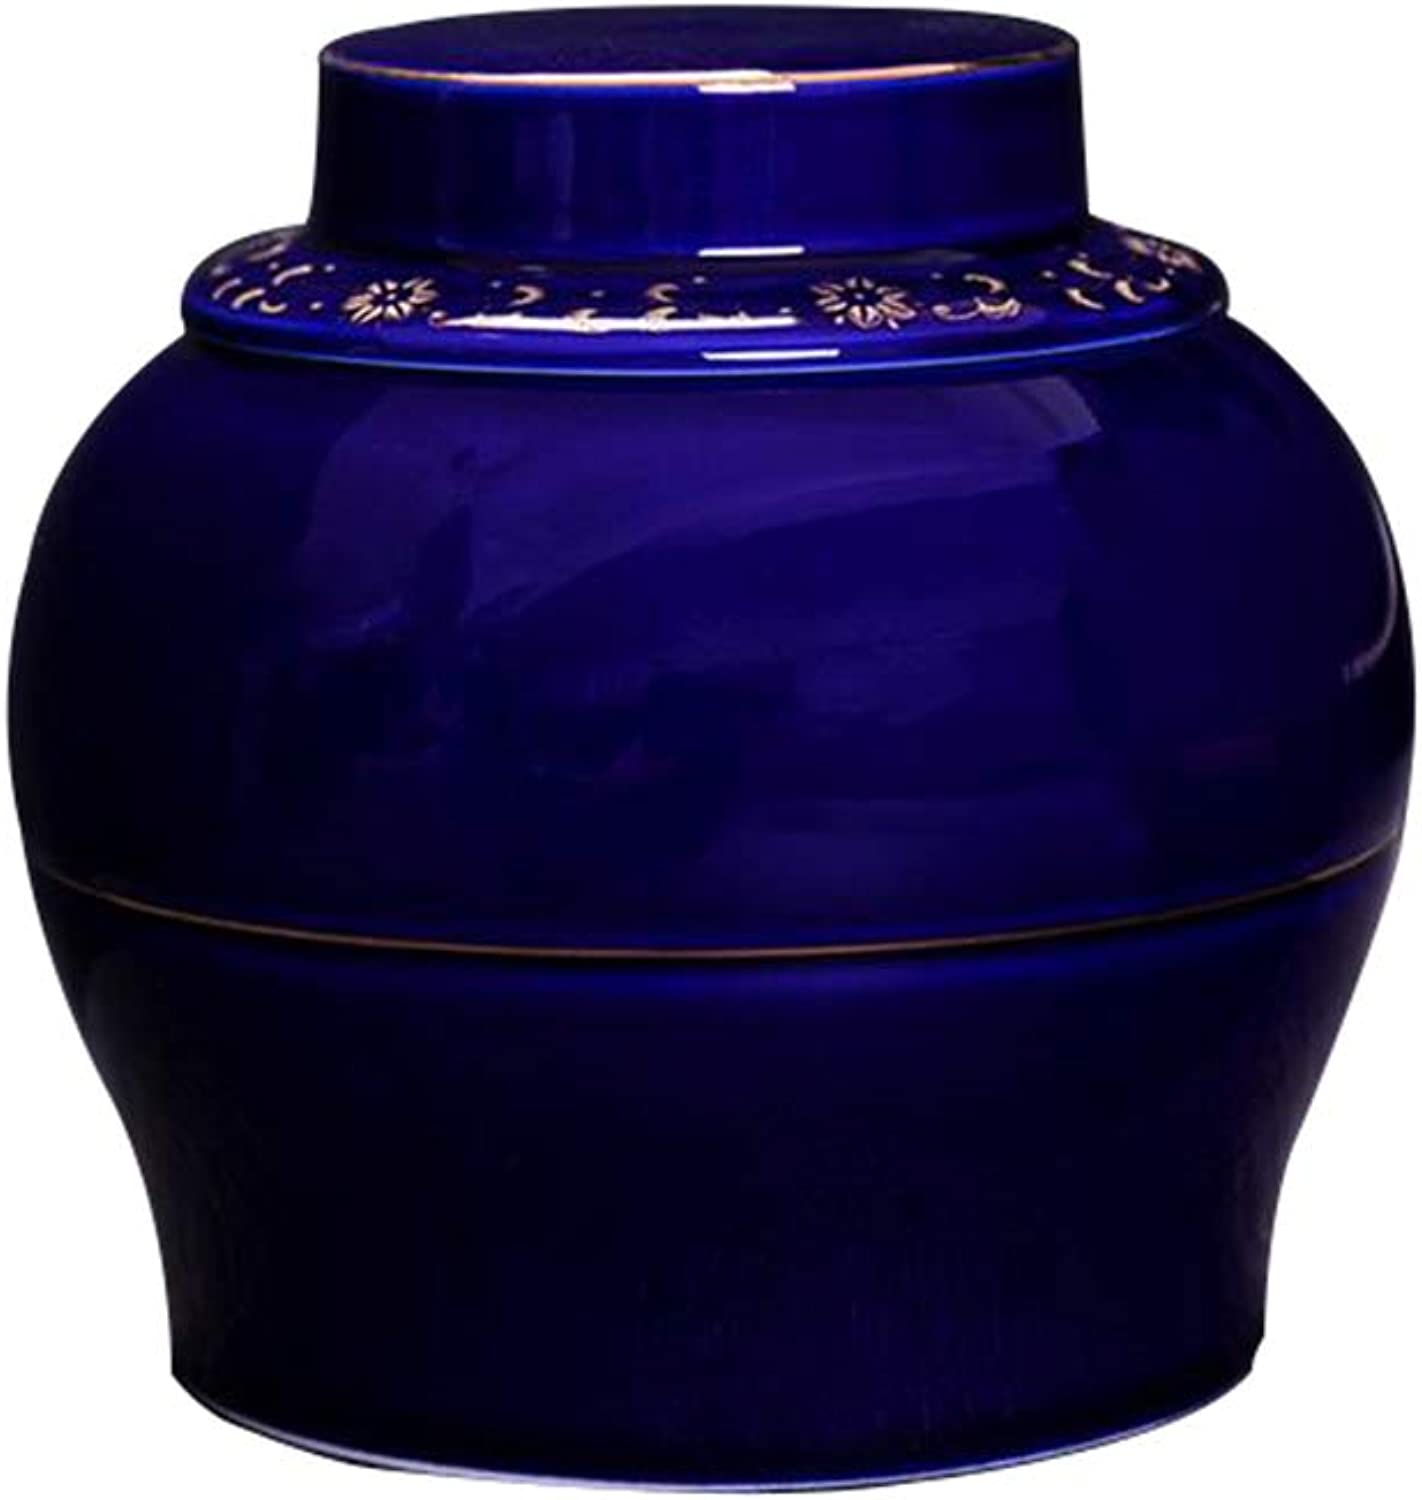 Adult Cremation Urn for Ashes,Handmade Ceramic Production,AntiRust,Burial Urns At Home or in Niche at Columbarium, Sapphire bluee